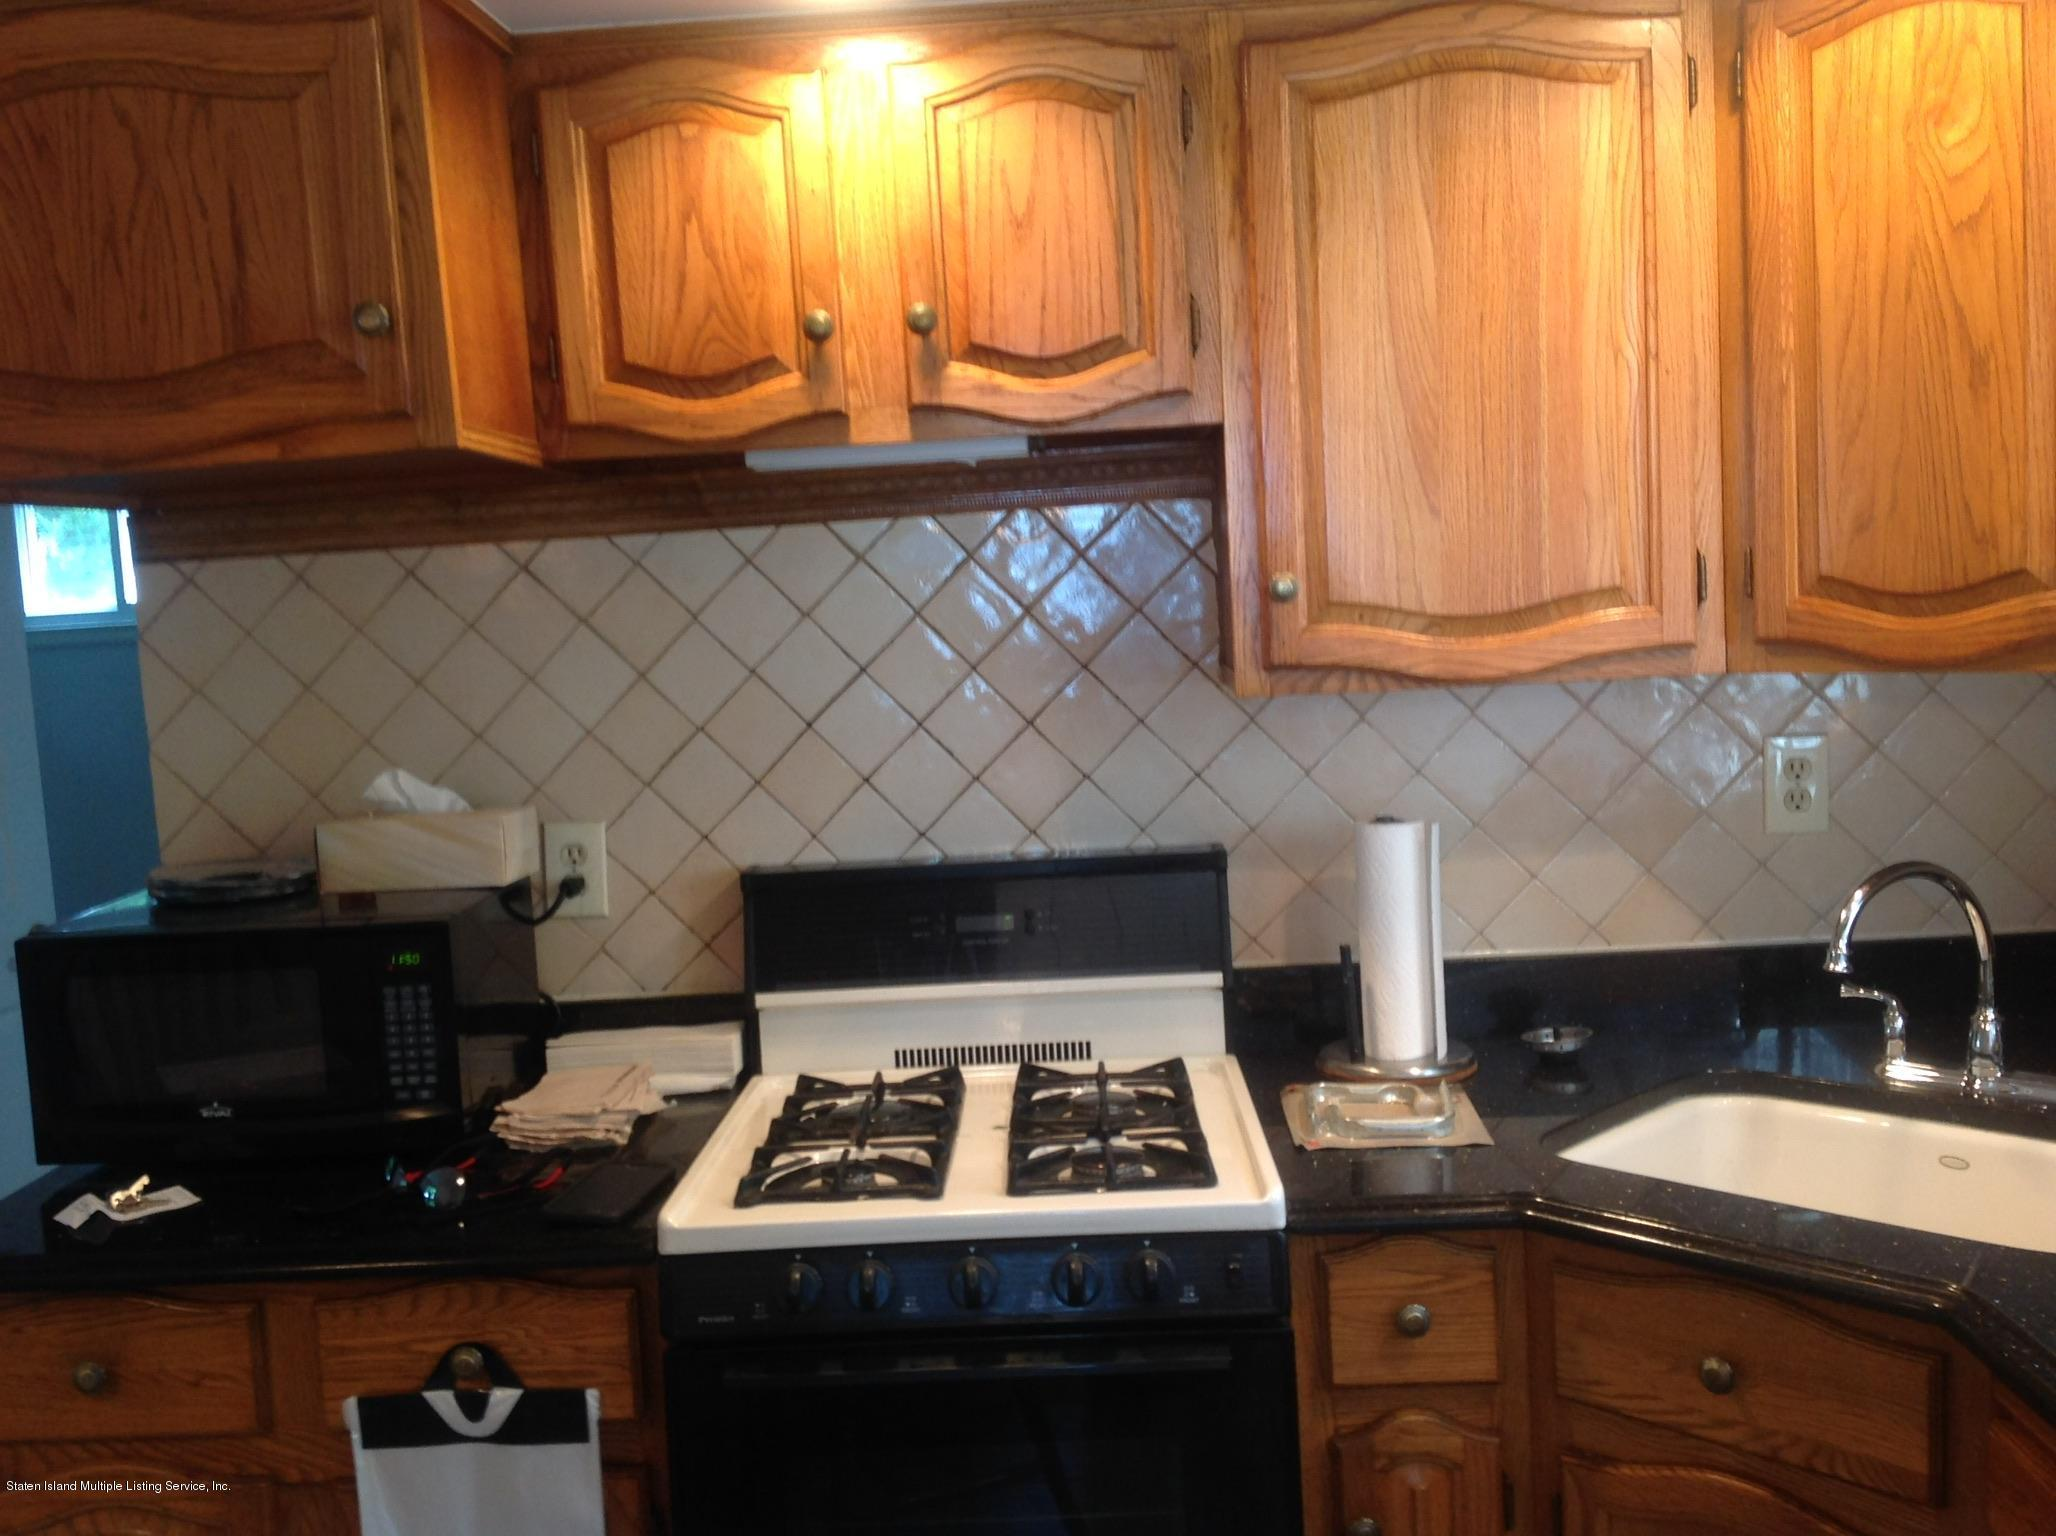 Single Family - Detached 28 Queen Street  Staten Island, NY 10314, MLS-1148779-5